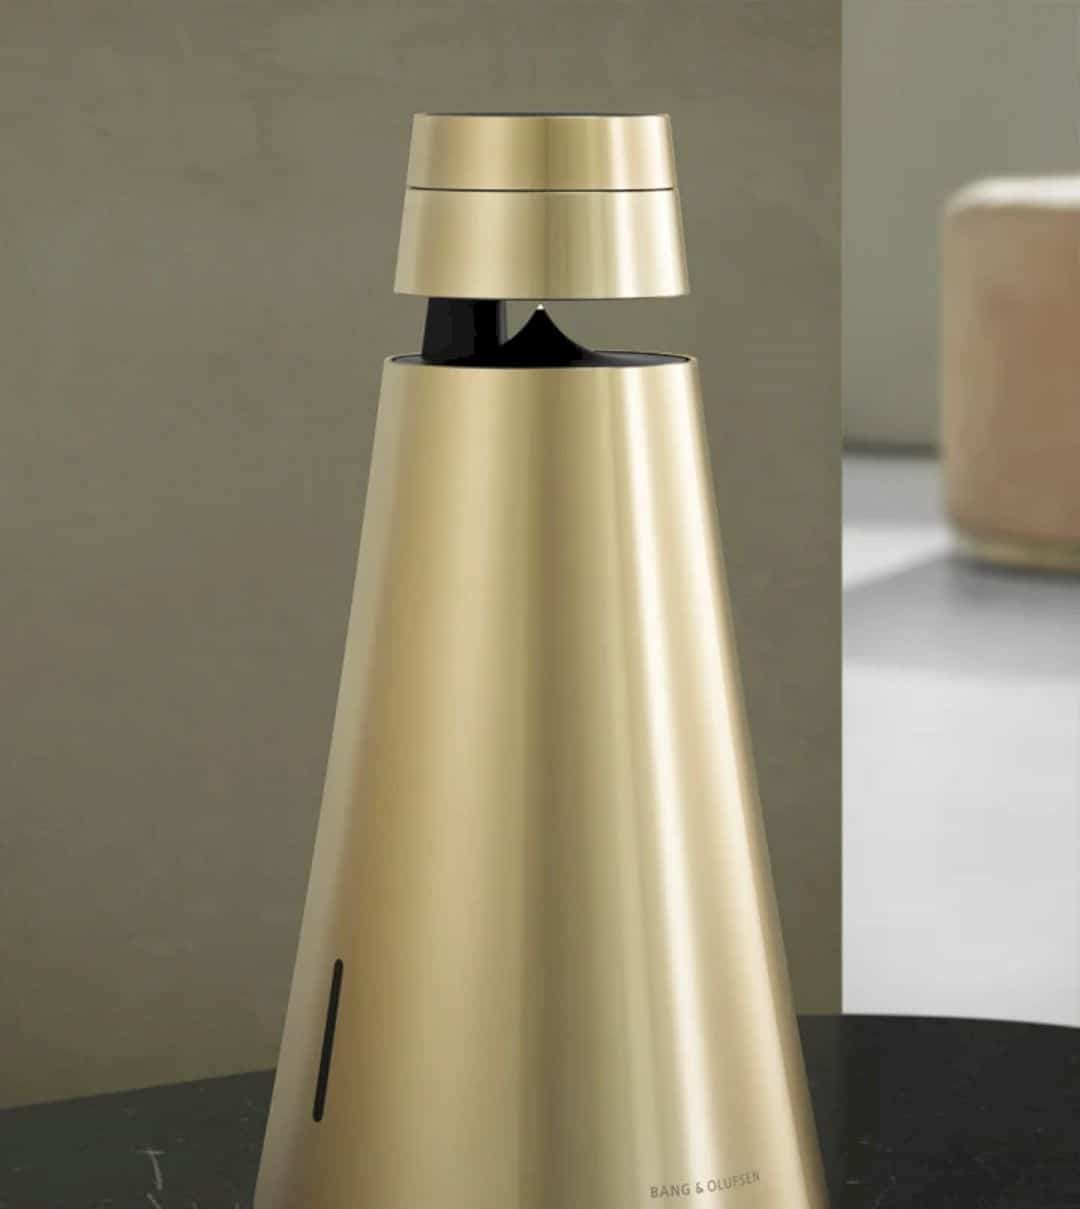 Beosound 1 With The Google Assistant 4